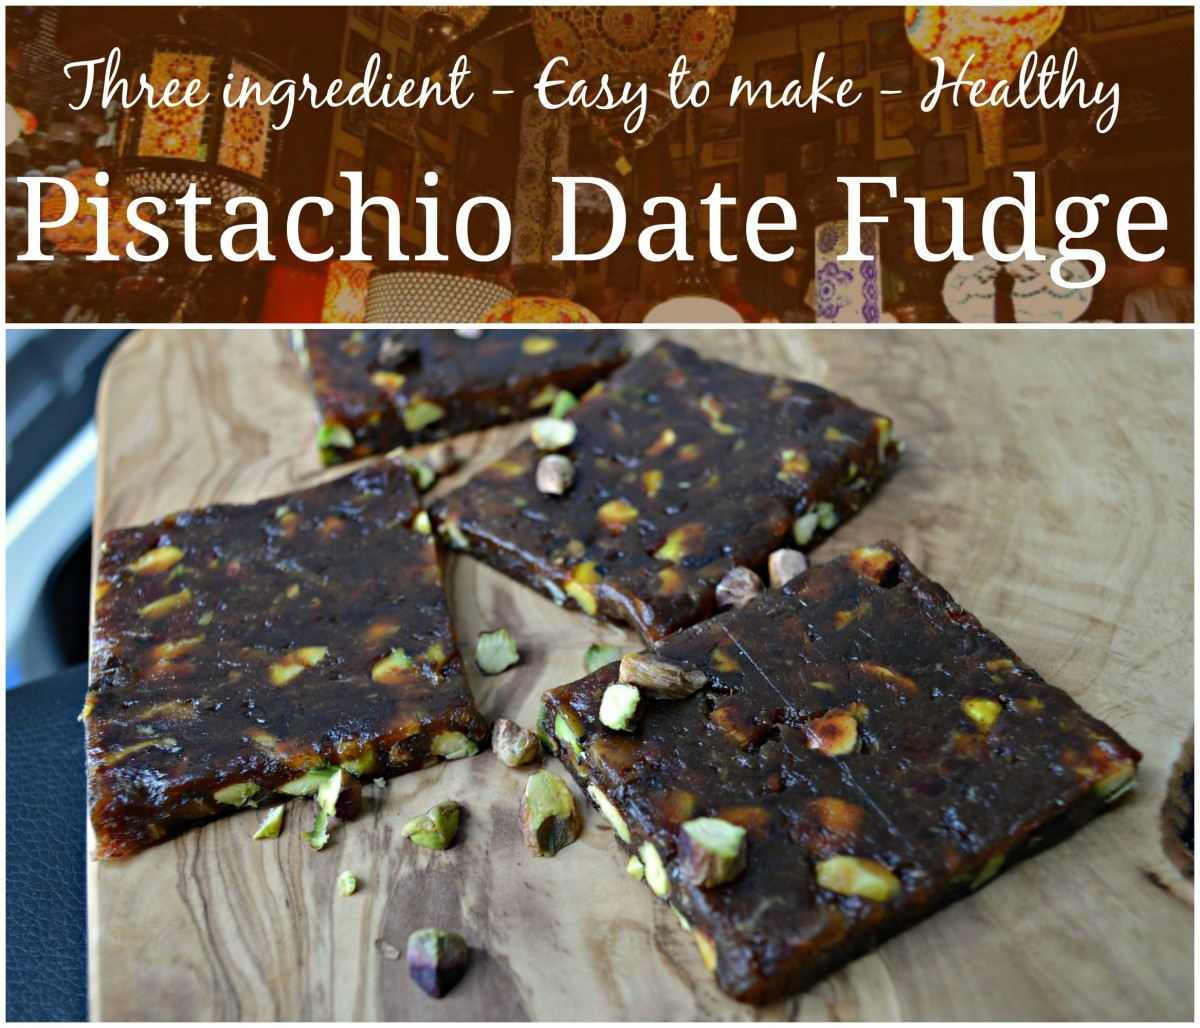 Healthy Dessert Recipe: Pistachio Date Fudge